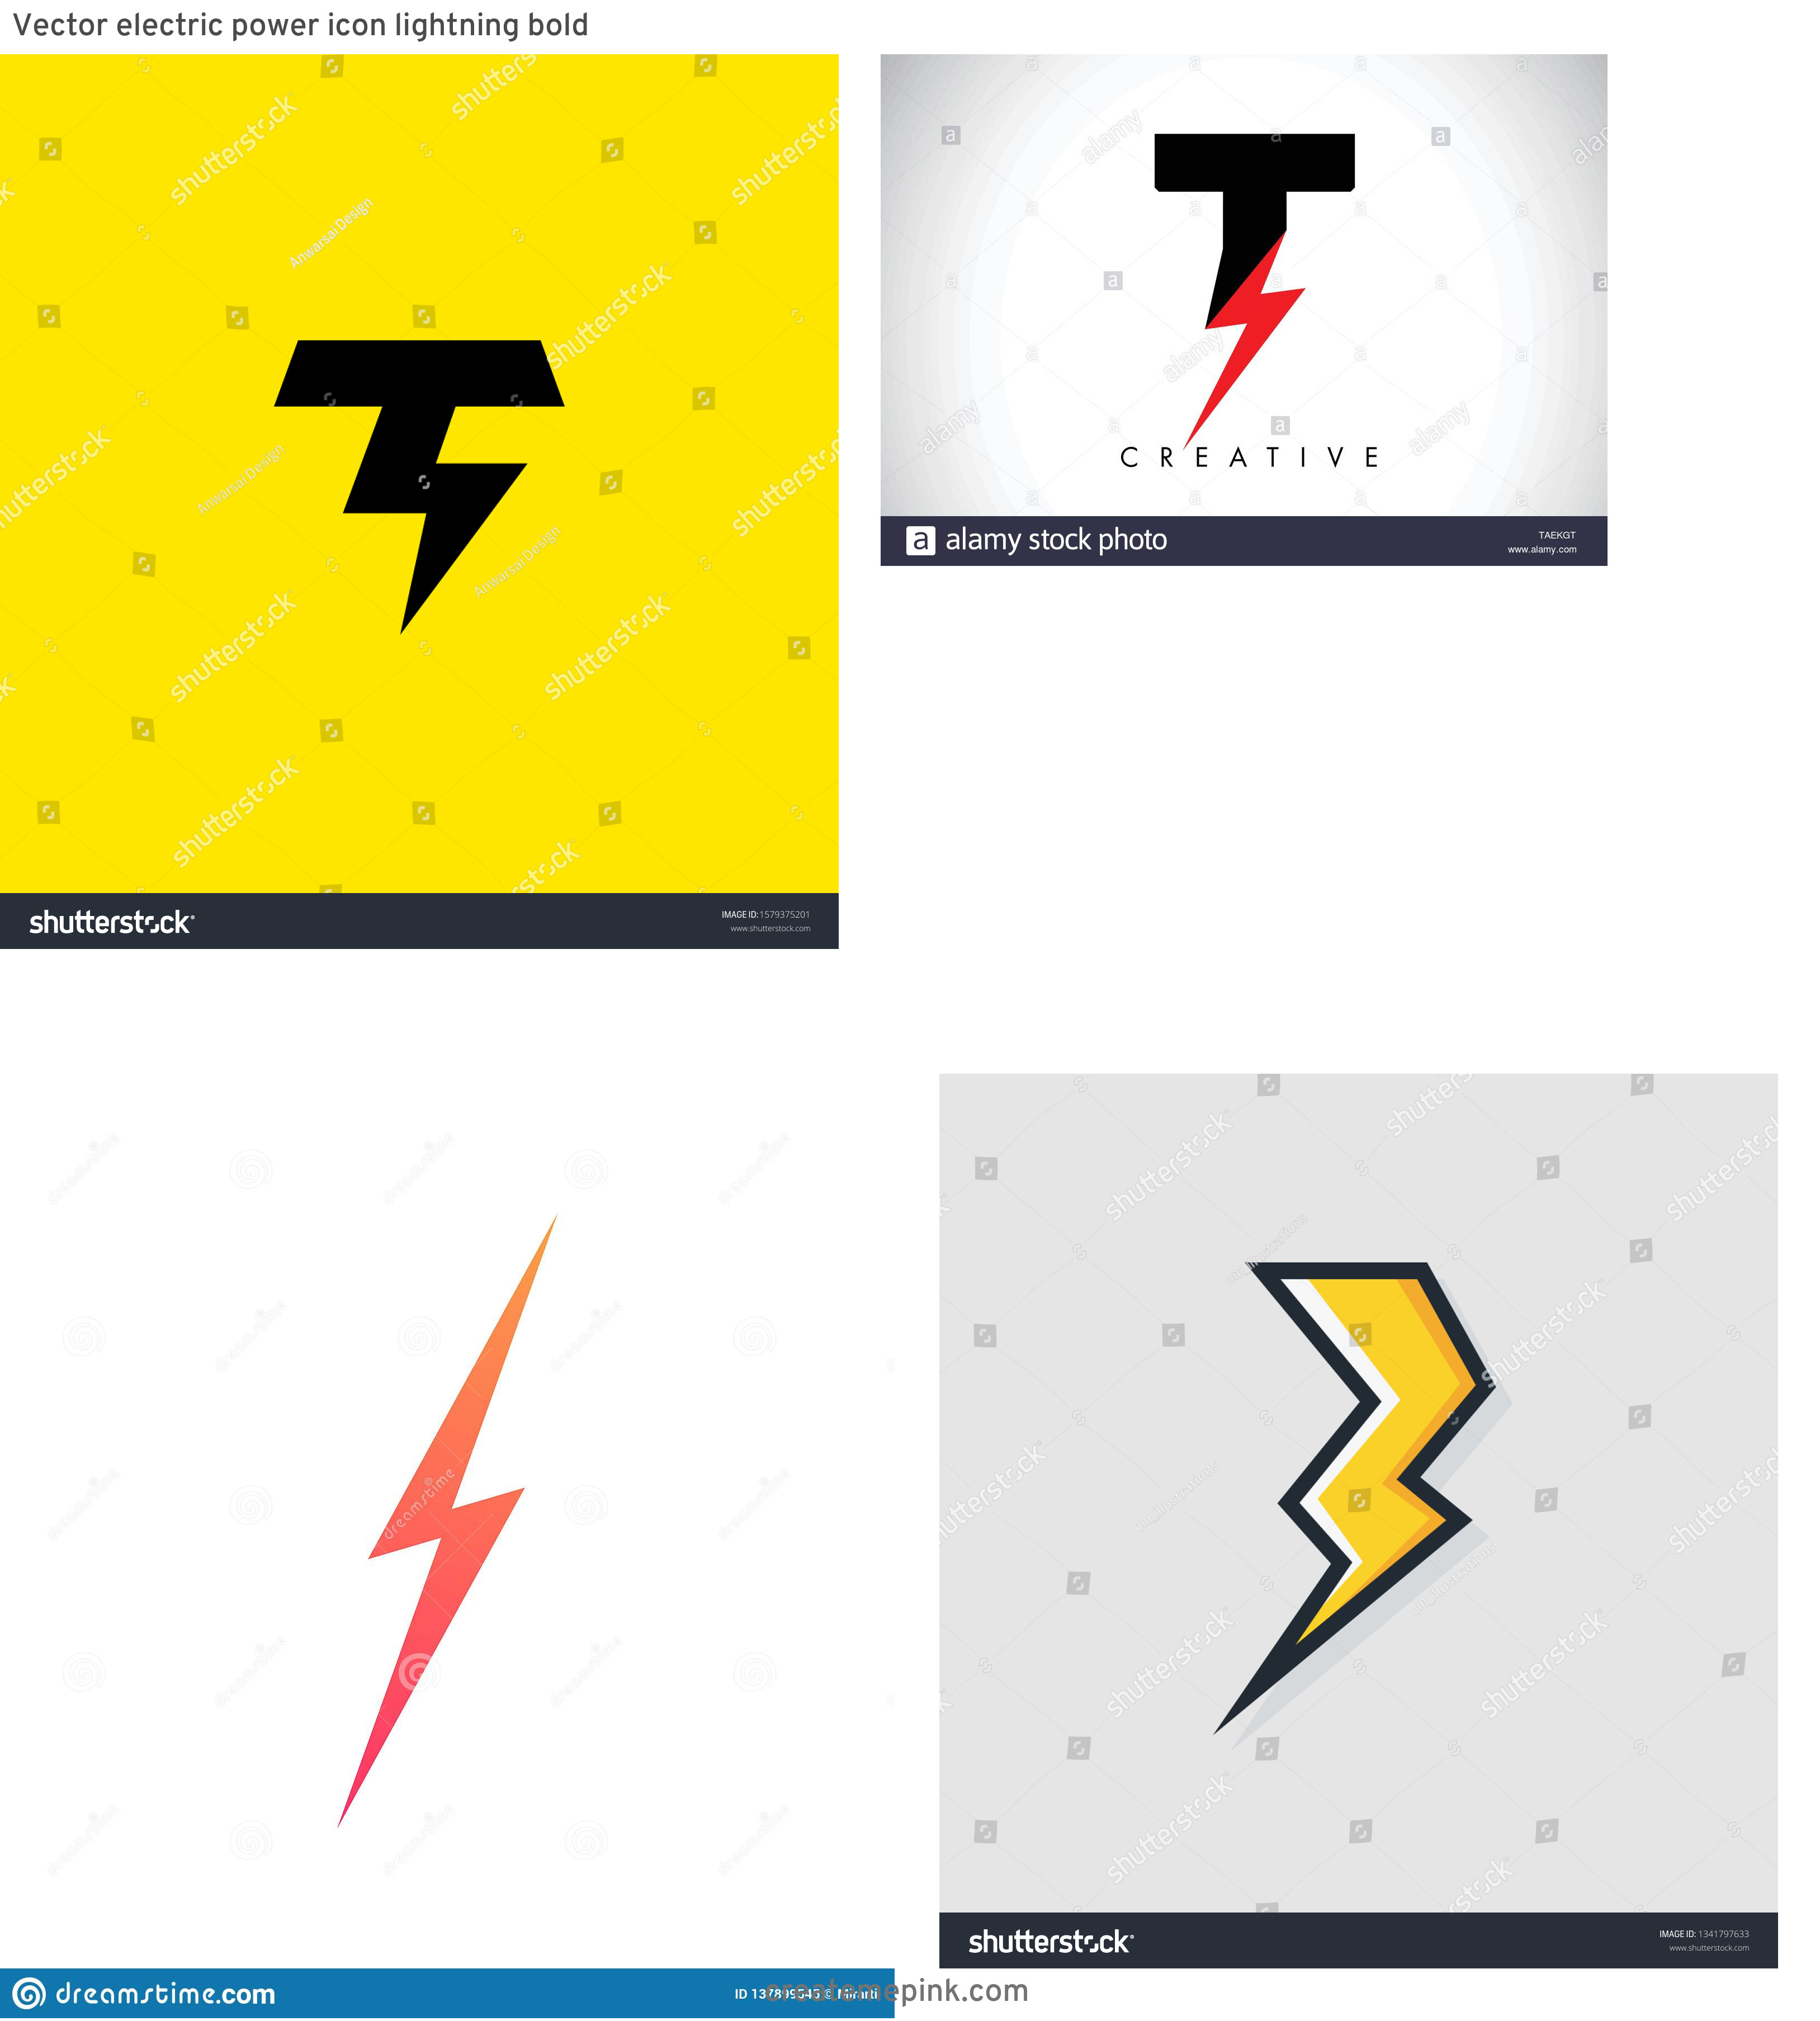 Lightning Vector T: Vector Electric Power Icon Lightning Bold